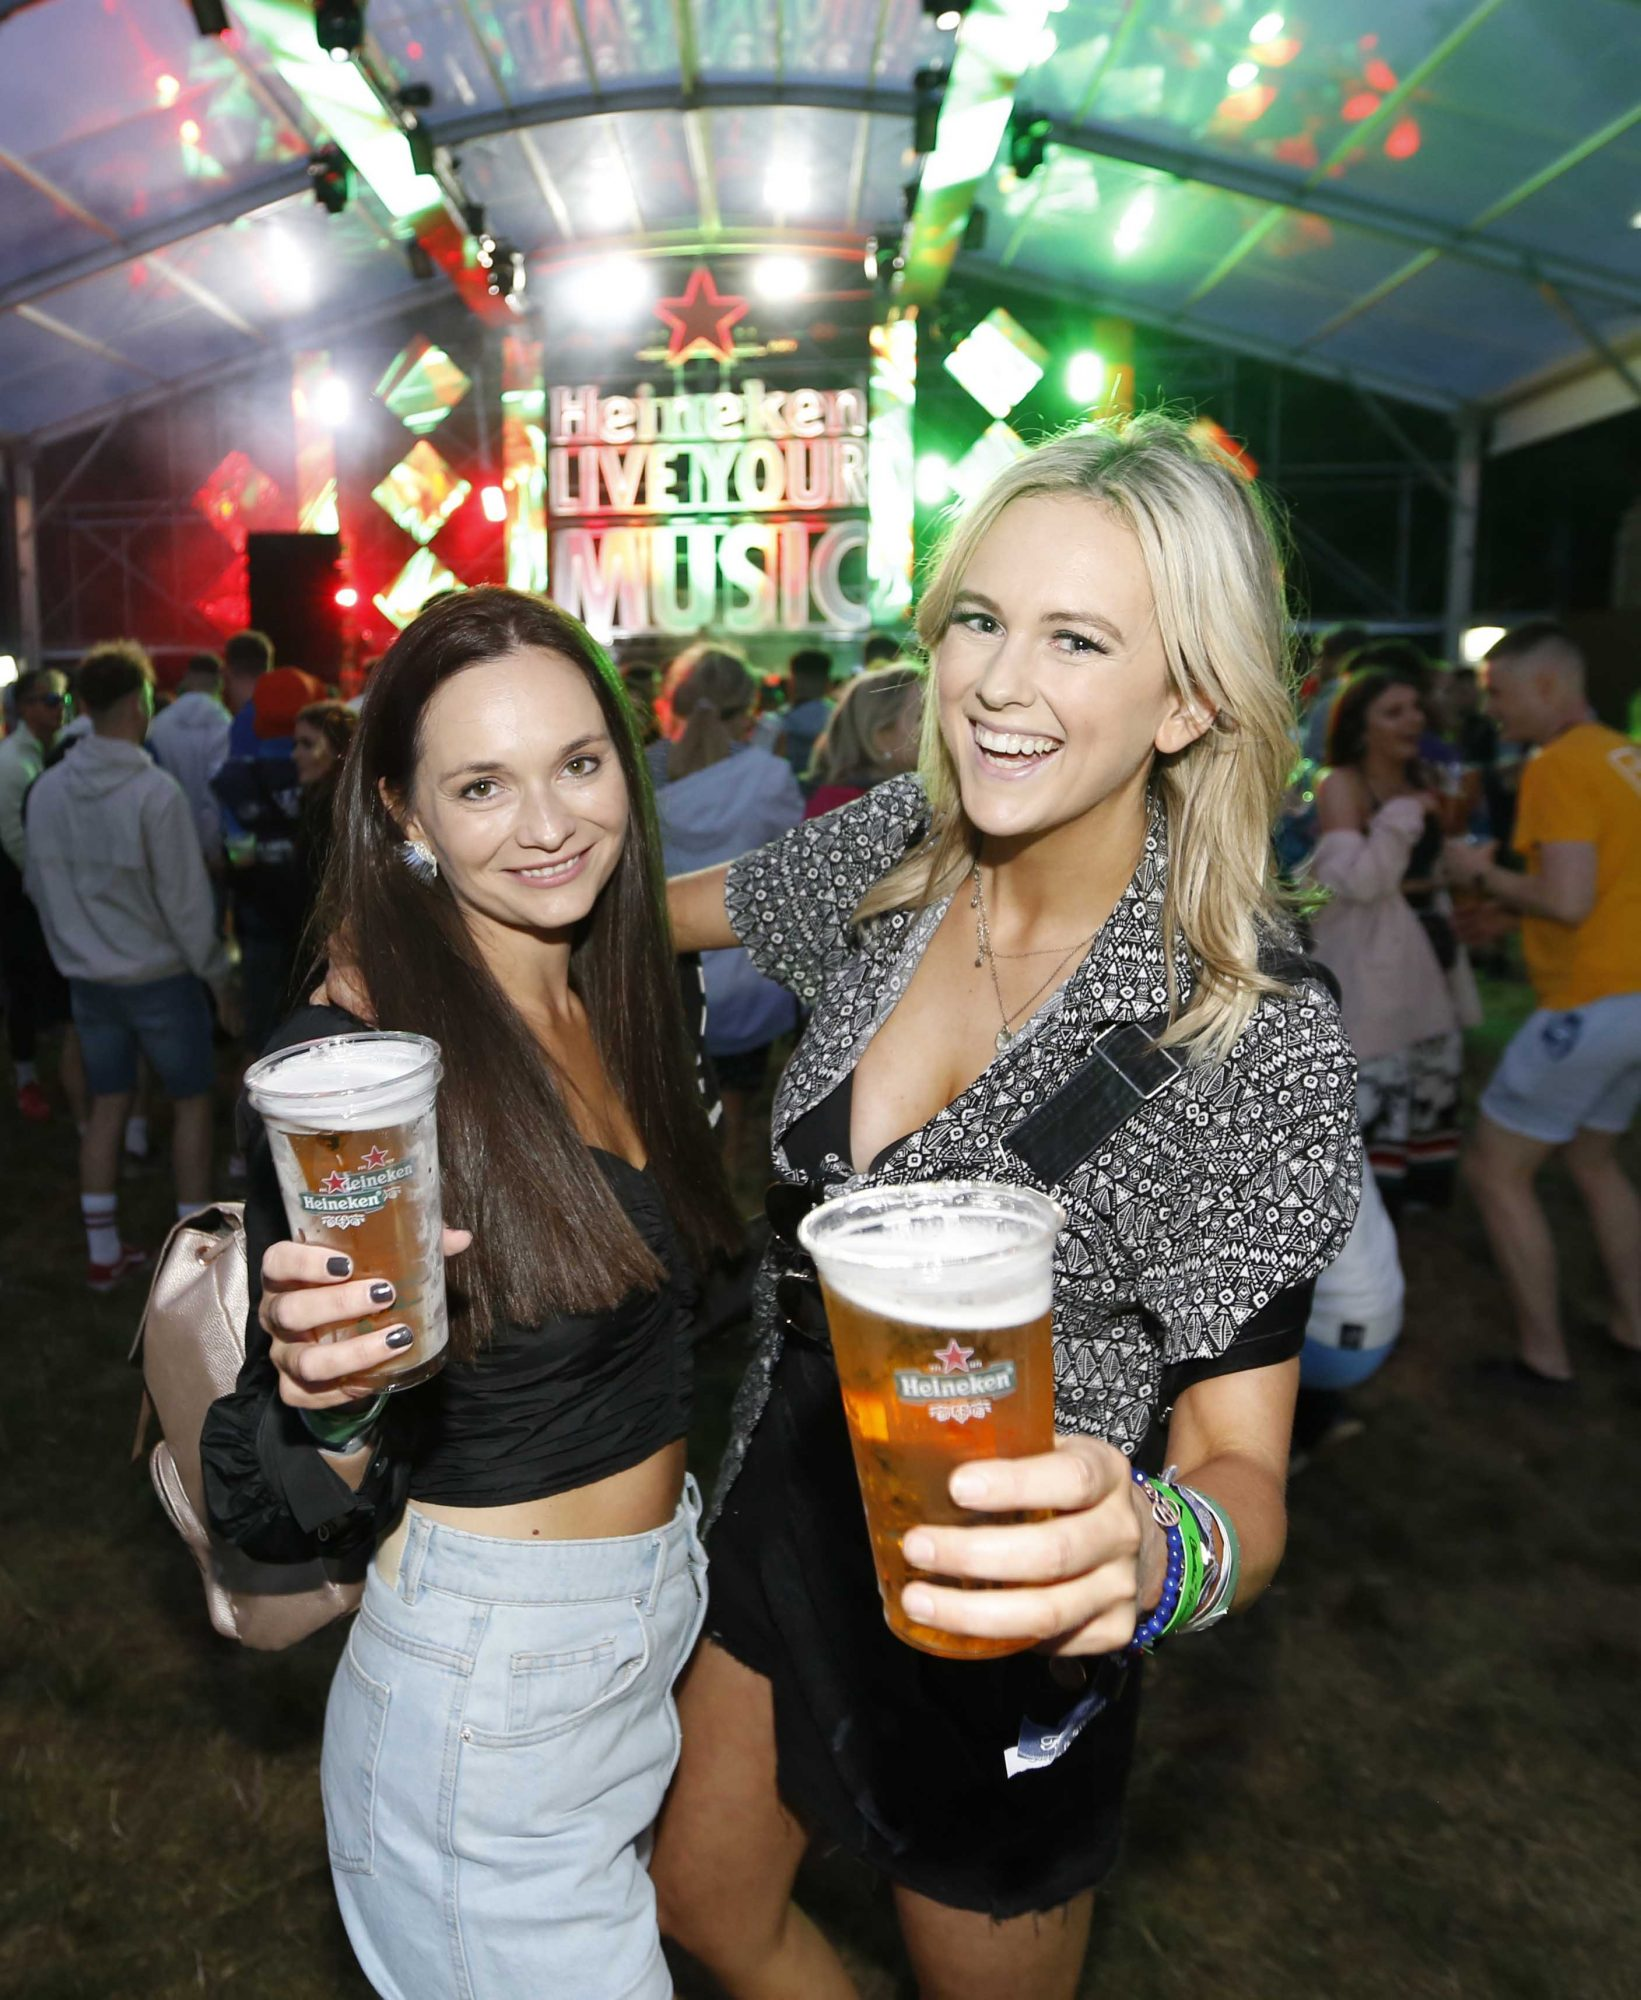 NO REPRO FEE 30/08/2019 Heineken Live Your Music Stage at Electric Picnic 2019. Pictured are (LtoR) Linda May- Fox and Cassie Stokes at the Heineken Live Your Music Stage at Electric Picnic 2019. This year's area is an enormous structure on two levels, with a glass roof that will keep festival-goers dry but let them dance beneath the sun and stars! The immersive and interactive lightshow has been reimagined for 2019 which, combined with the state-of-the-art soundsystem, make Live Your Music the most impressive festival stage in the country. Photo: Sasko Lazarov/Phorocall Ireland